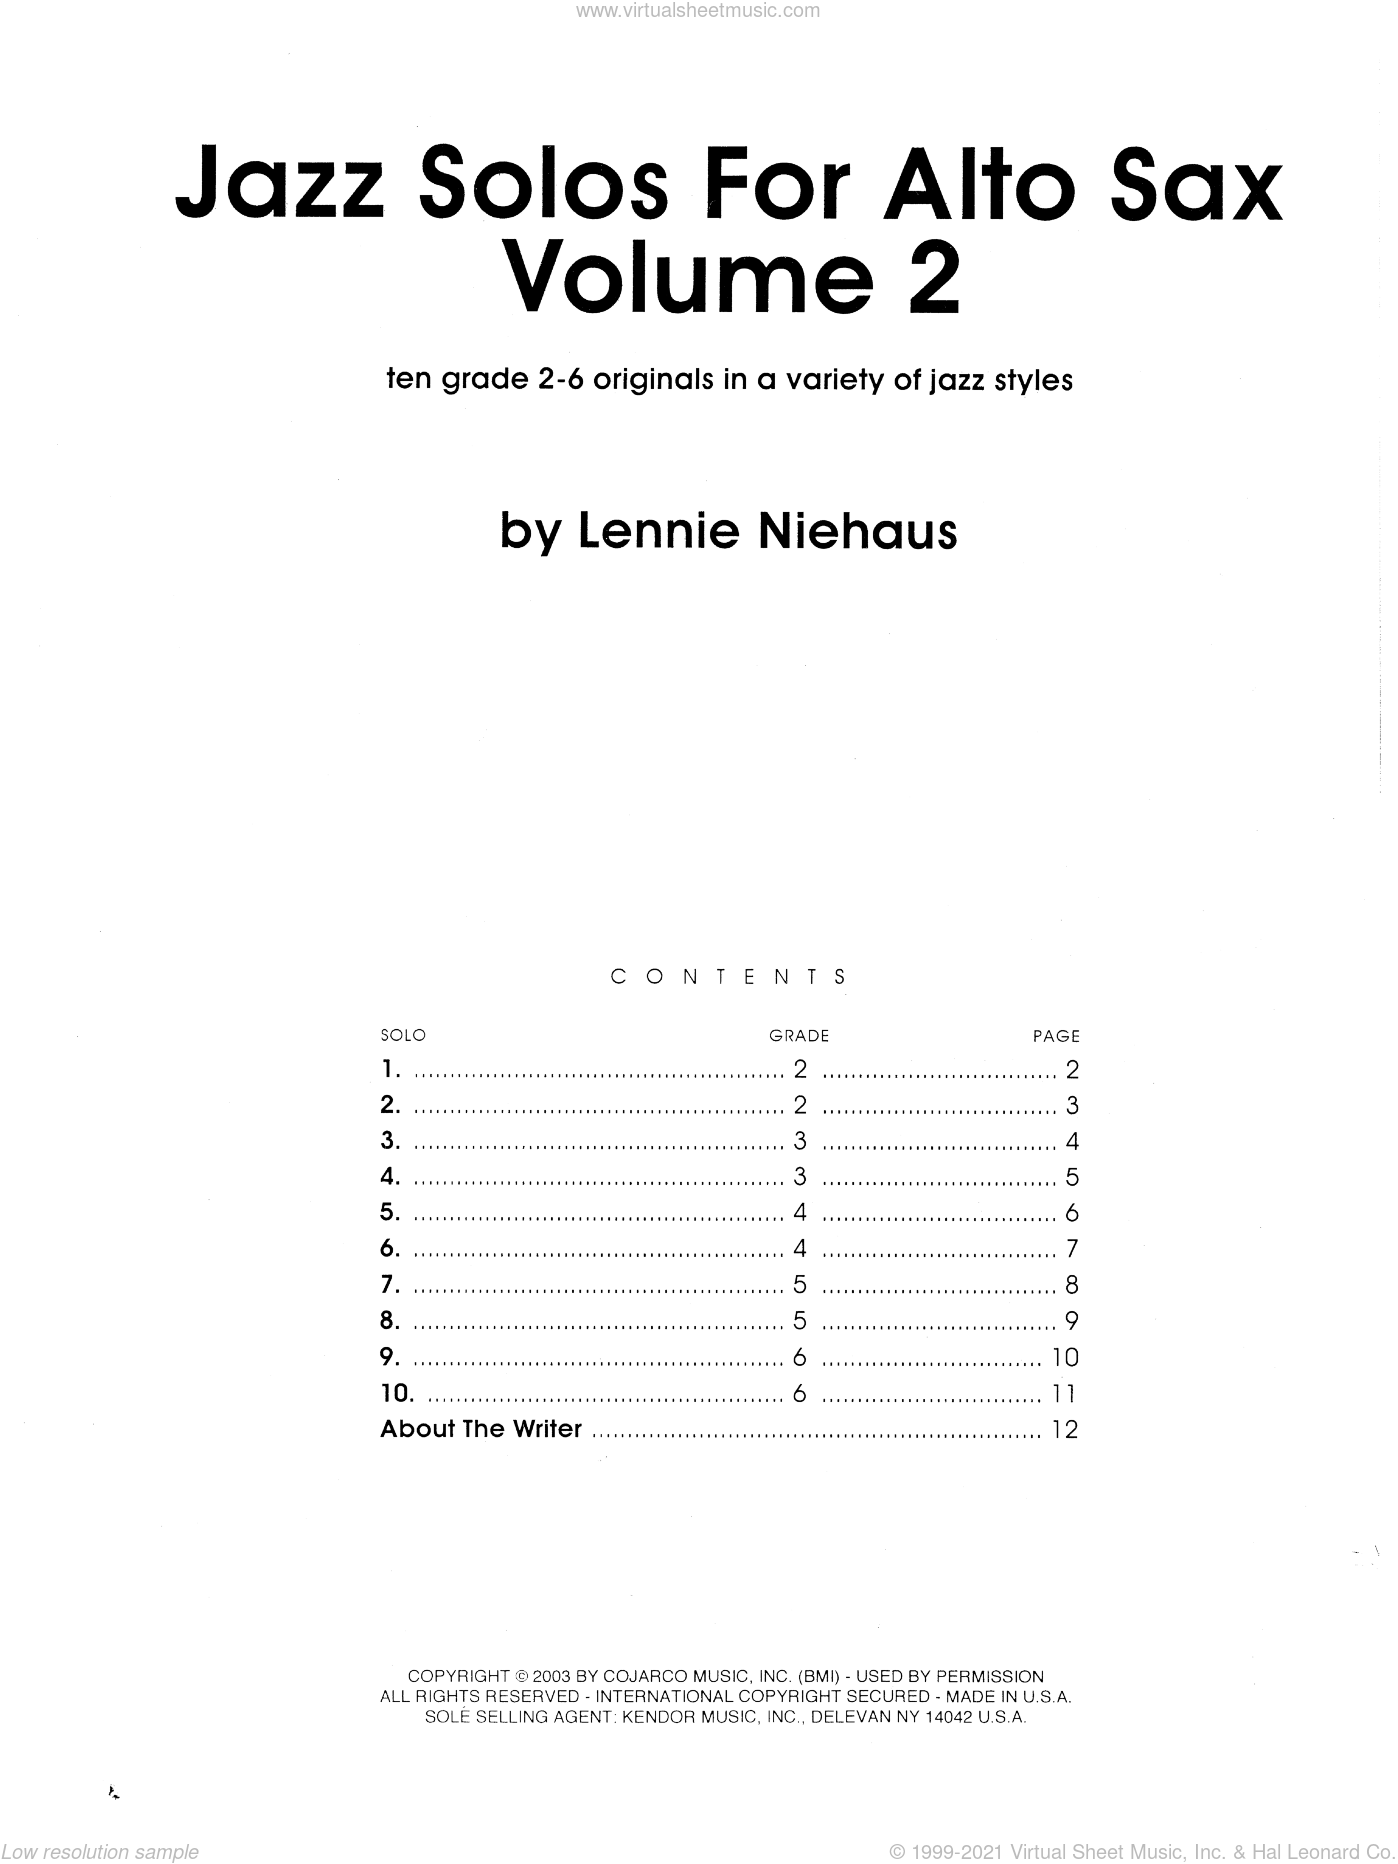 Jazz Solos For Alto Sax, Volume 2 sheet music for alto saxophone solo by Lennie Niehaus, intermediate skill level